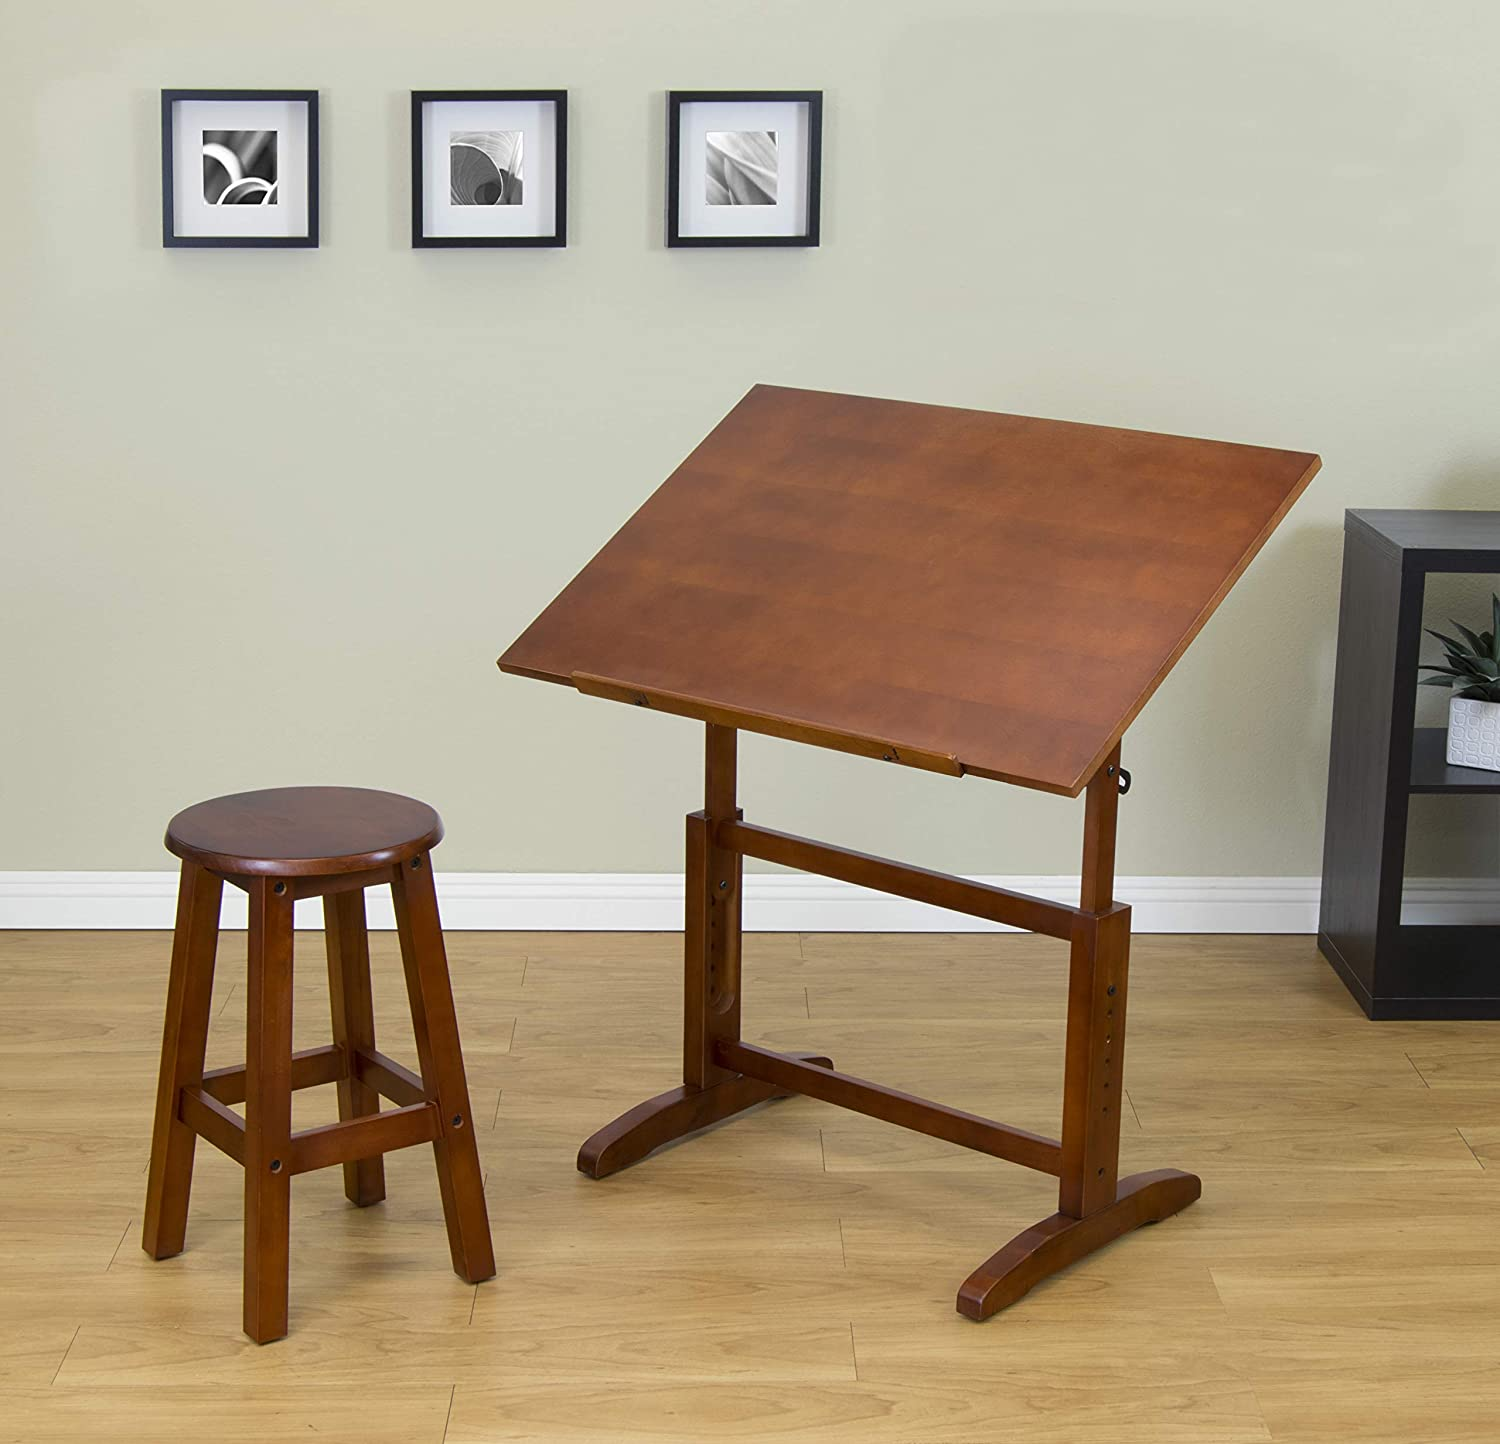 Studio Designs 13257 Creative Table and Stool Set, Walnut Inc.